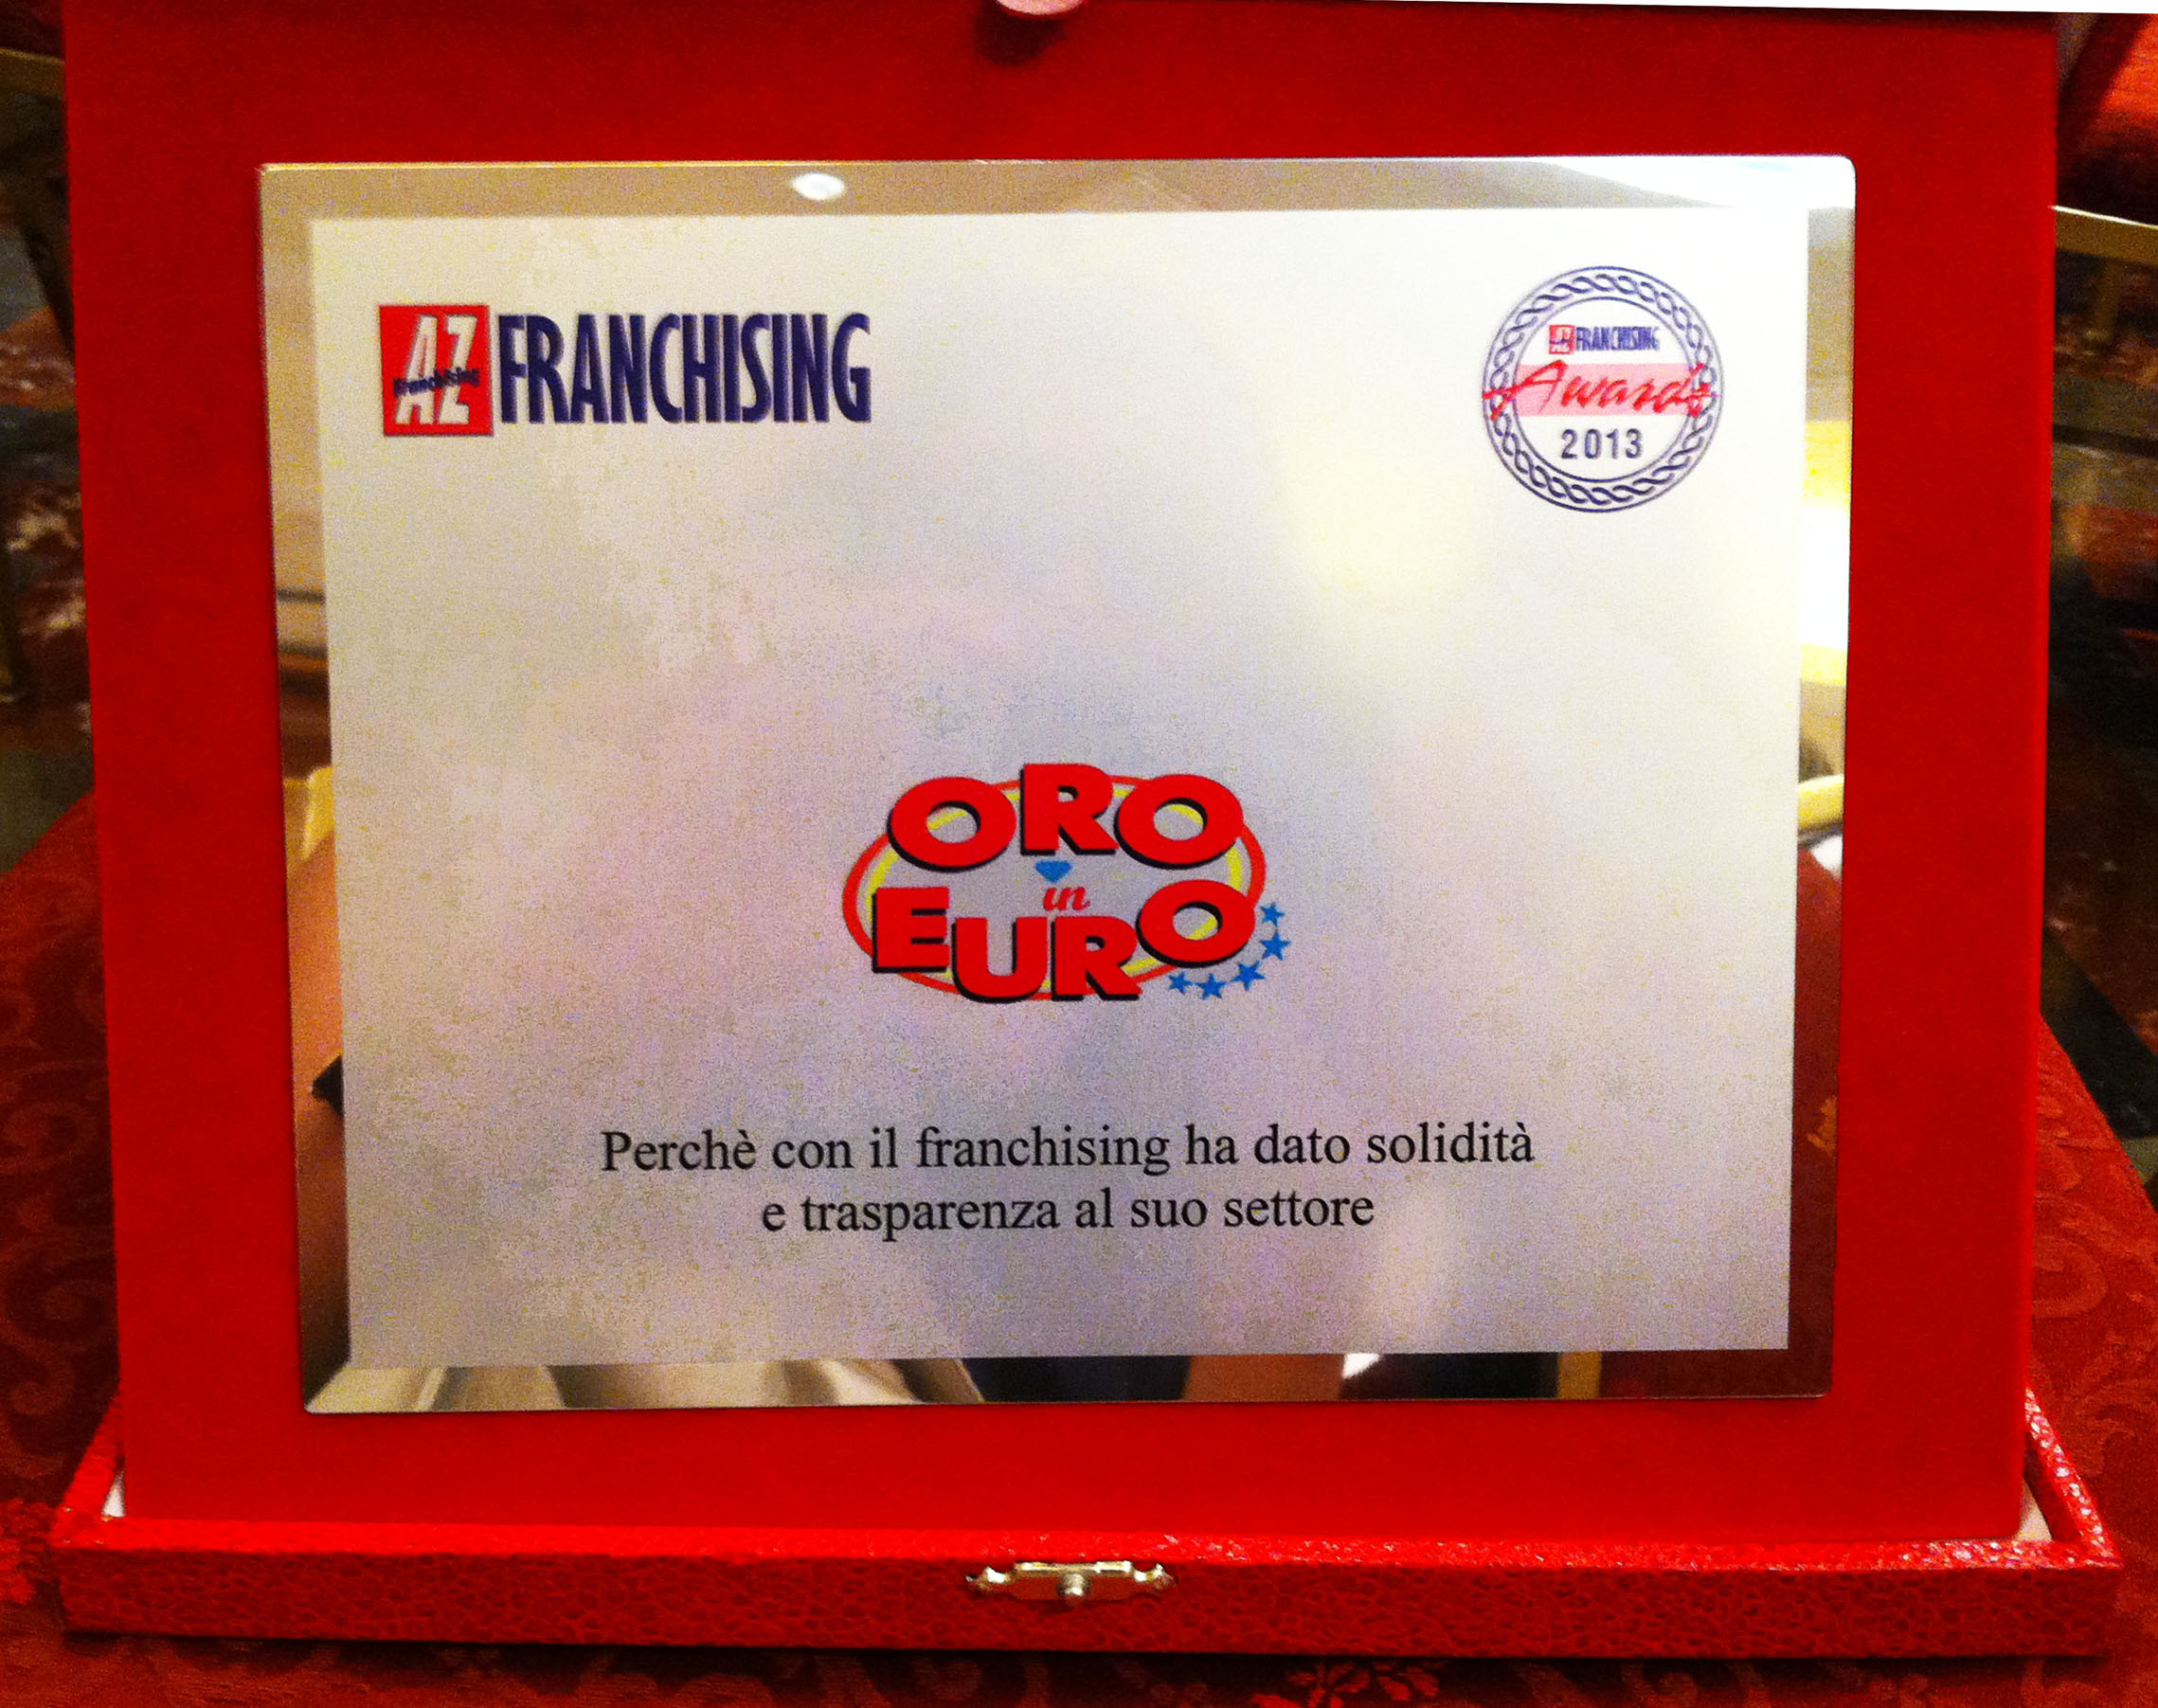 ORO IN EURO VINCE L'AZ FRANCHISING AWARDS 2013